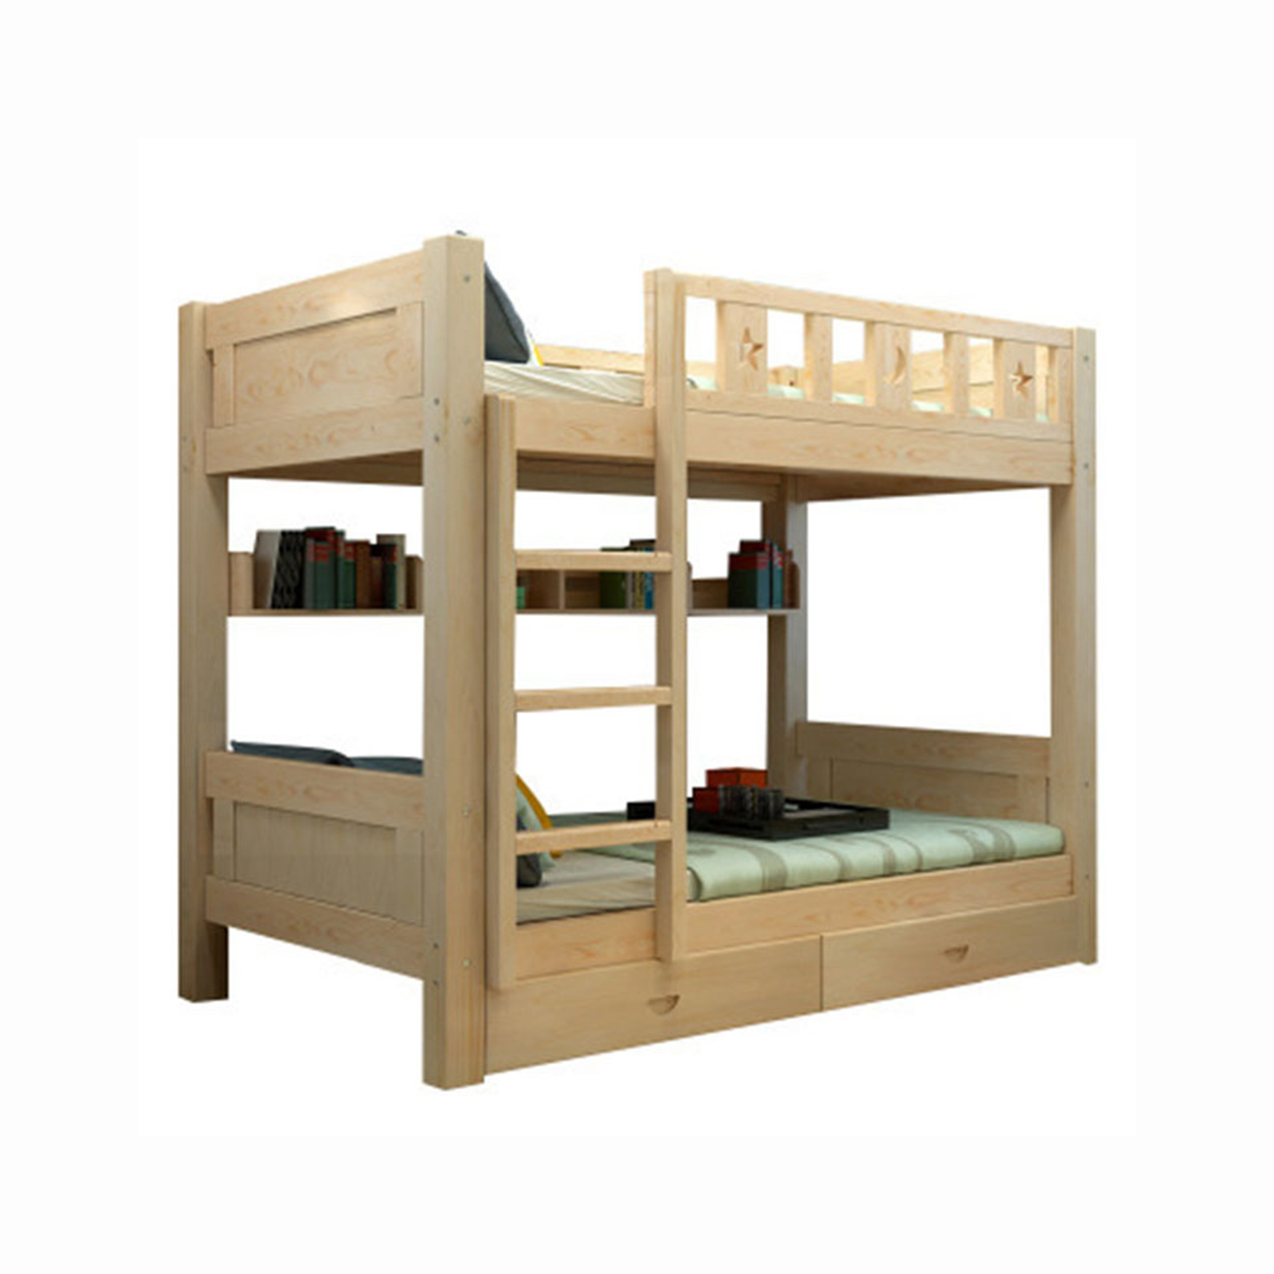 Bunk Bed Modern Wooden Furniture Bedroom Wood Beds Storage Buy Bedroom Furniture Bedroom Sets Double Bed Wood Beds Camas Modernas Chambre A Coucher Cheap Bunk Bed For Kids Modern Bedroom Furniture Modern Italian Hotel Kids